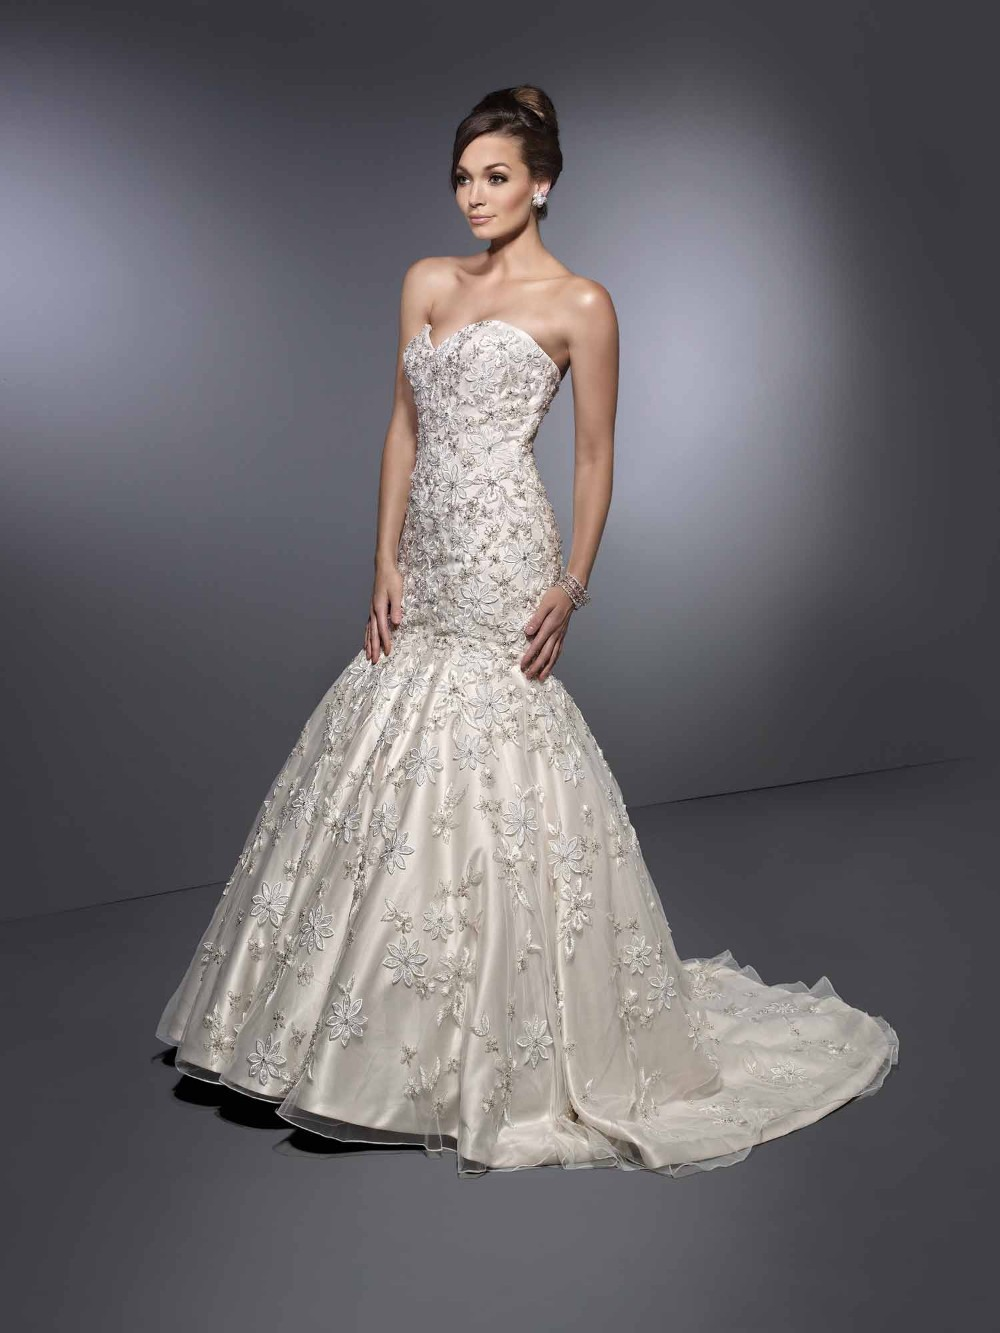 Mermaid Wedding Dresses With Diamonds : Sexy adult mermaid wedding dresses lace up backless bridal gowns